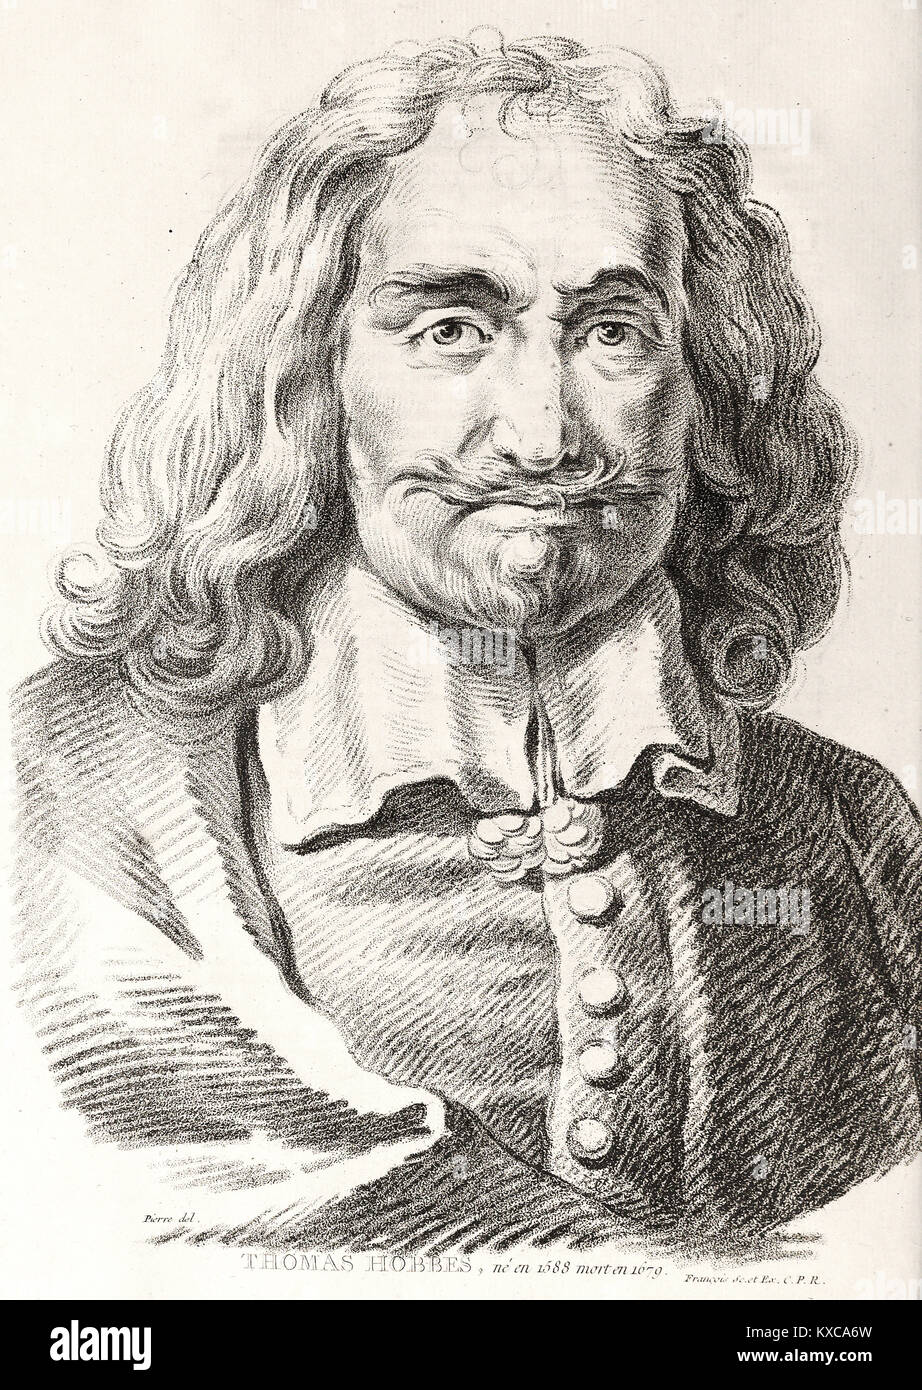 portrait of thomas hobbes philosopher french engraving 18th